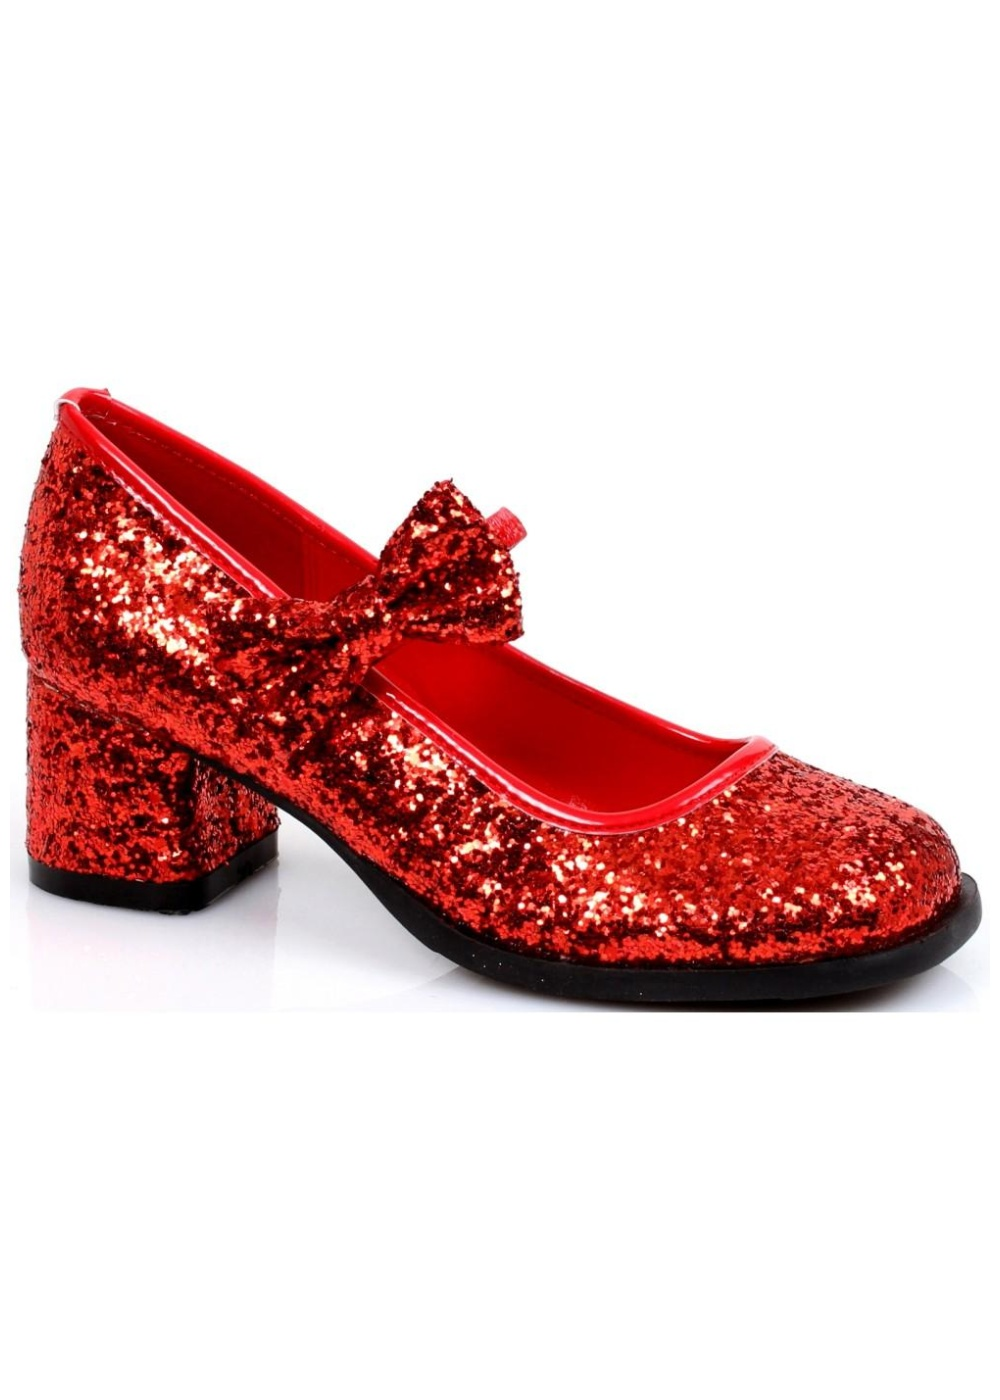 The sexy red sequin high heels are adorned in red sequins and feature a 5 inch sequin heel. The bottom of the shoe is black and features a no-slip grip. The interior of the shoe is red.